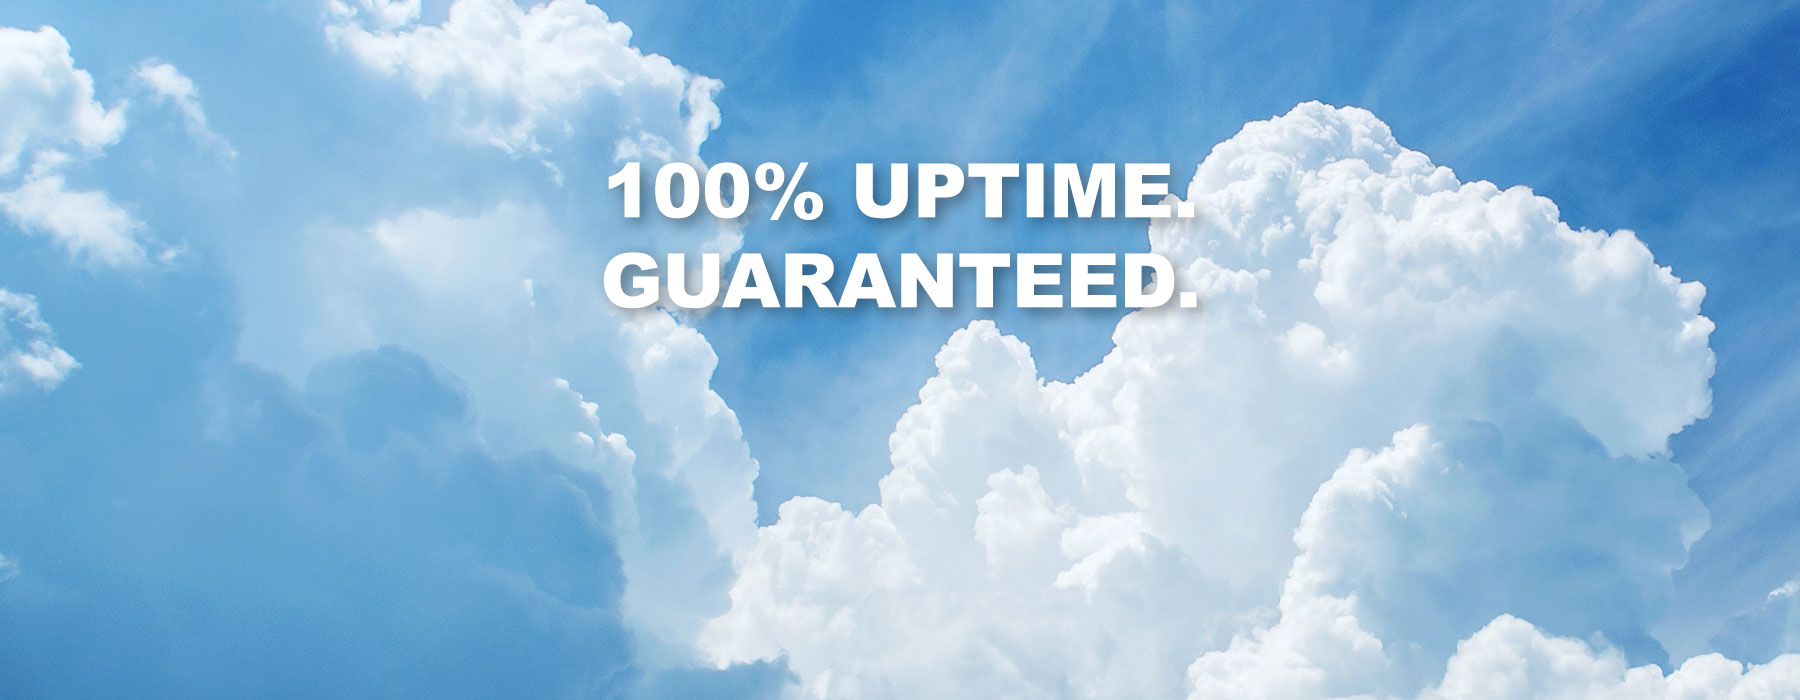 We Offer Bulletproof Cloud Hosting with a 100% Uptime SLA: Unlimited storage, users, and applications included.